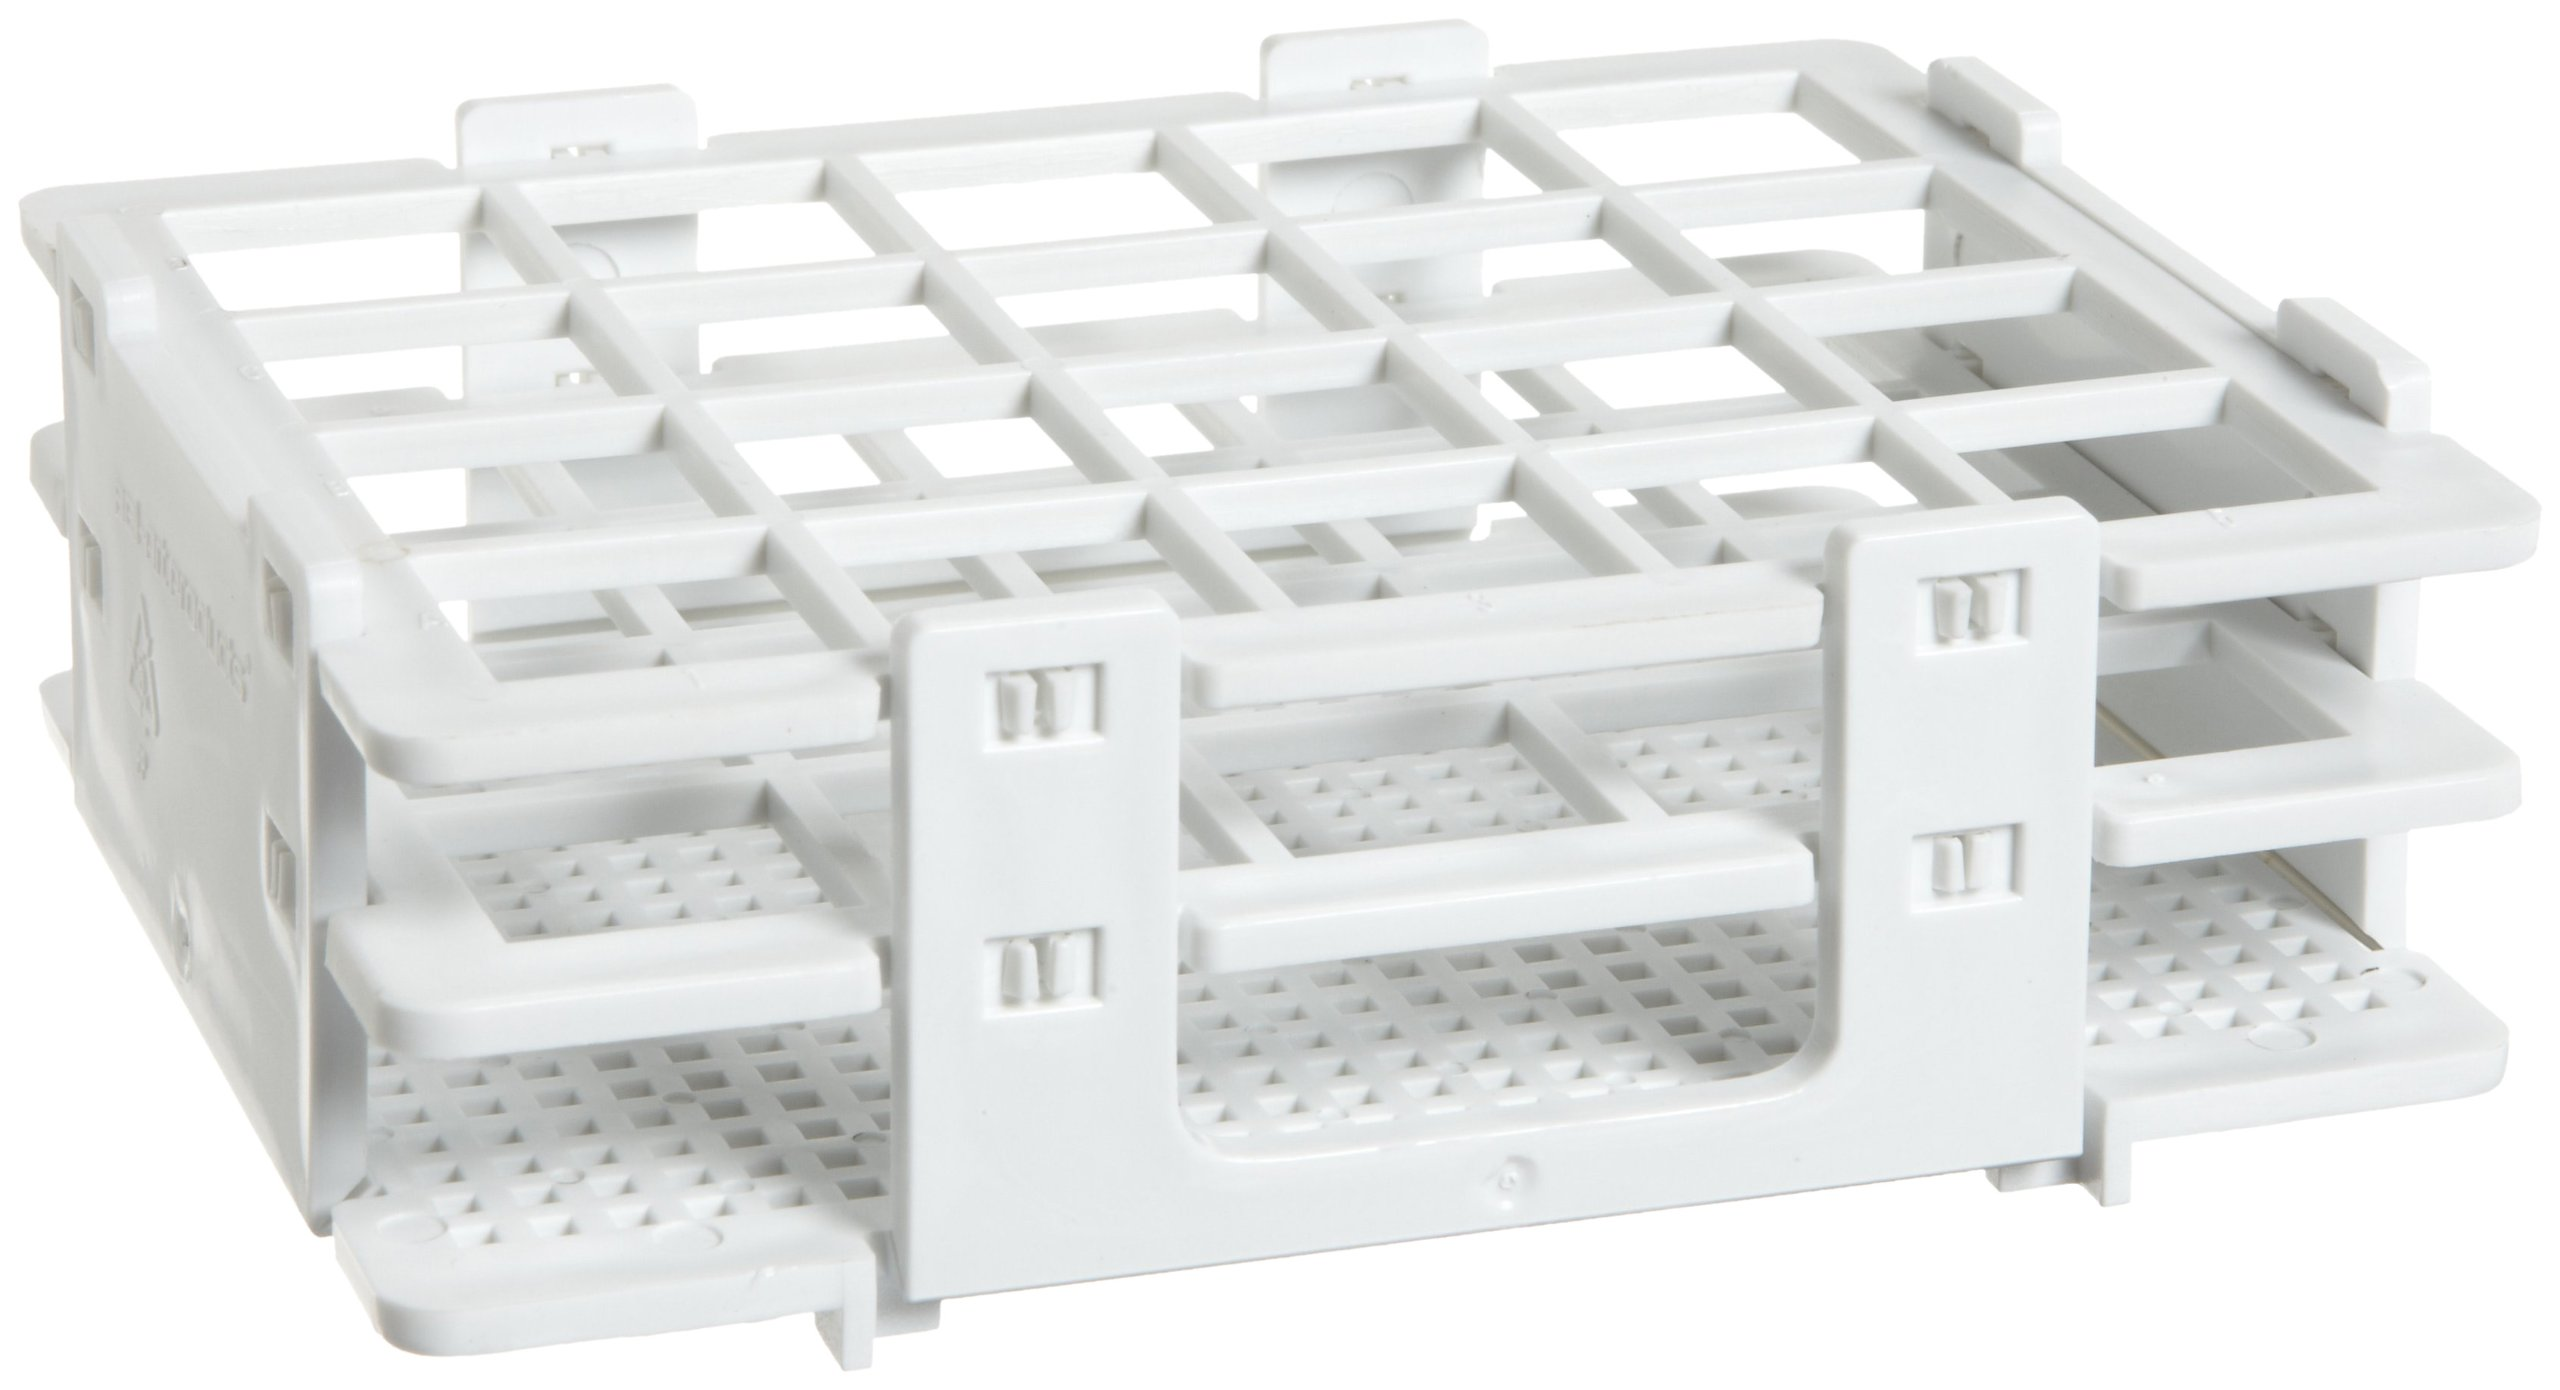 Bel-Art F18514-0020 No-Wire Bottle and Vial Rack; 16-20mm, 20 Places, 5.08 x 4.15 x 1.70 in., Polypropylene